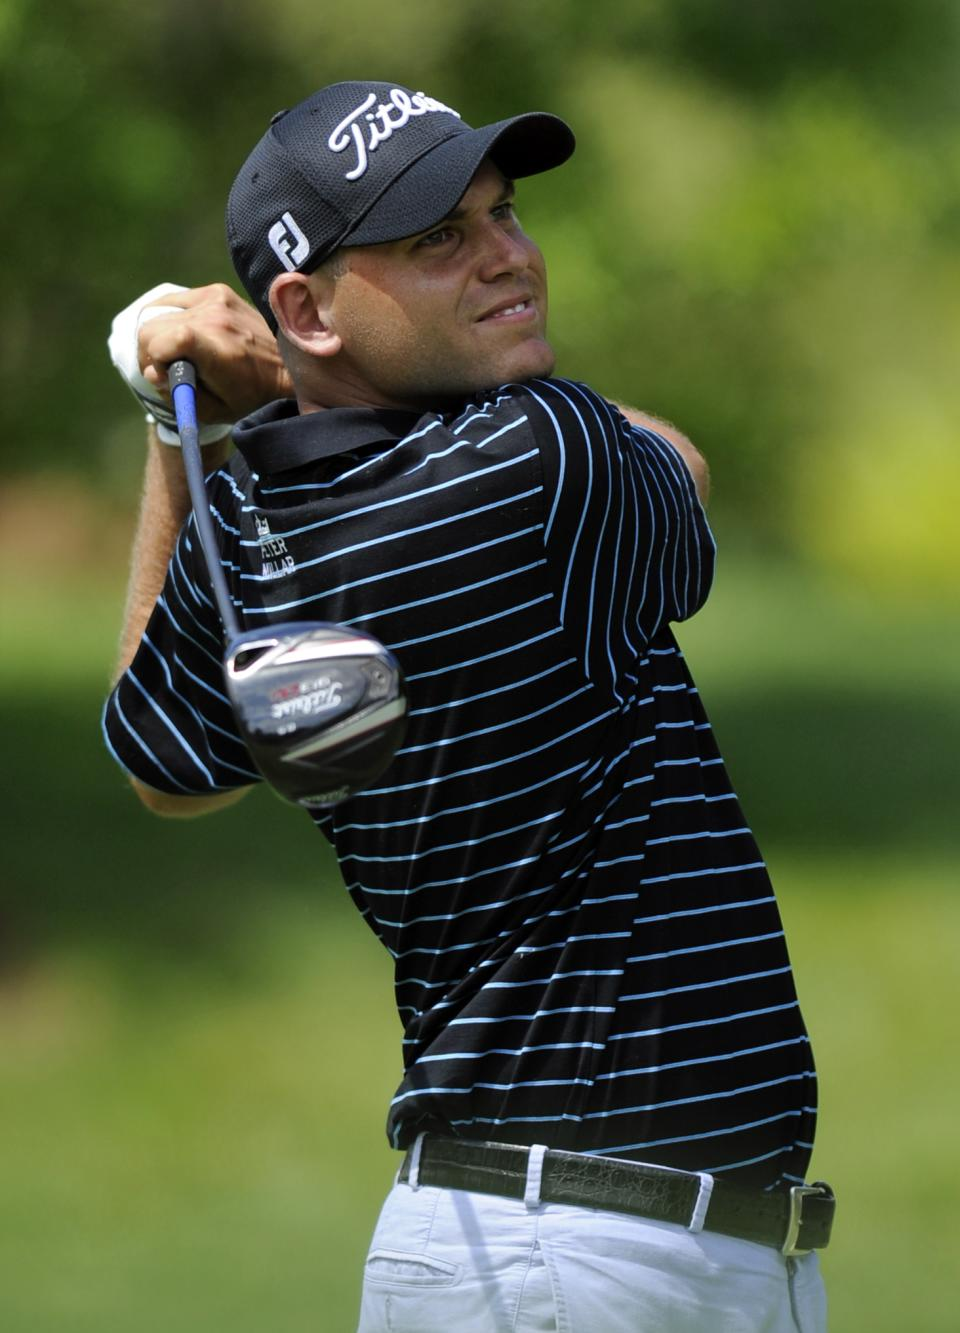 Bill Haas watches his drive from the 11th tee during the third round of the AT&T National golf tournament at Congressional Country Club, Saturday, June 29, 2013, in Bethesda, Md. (AP Photo/Nick Wass)